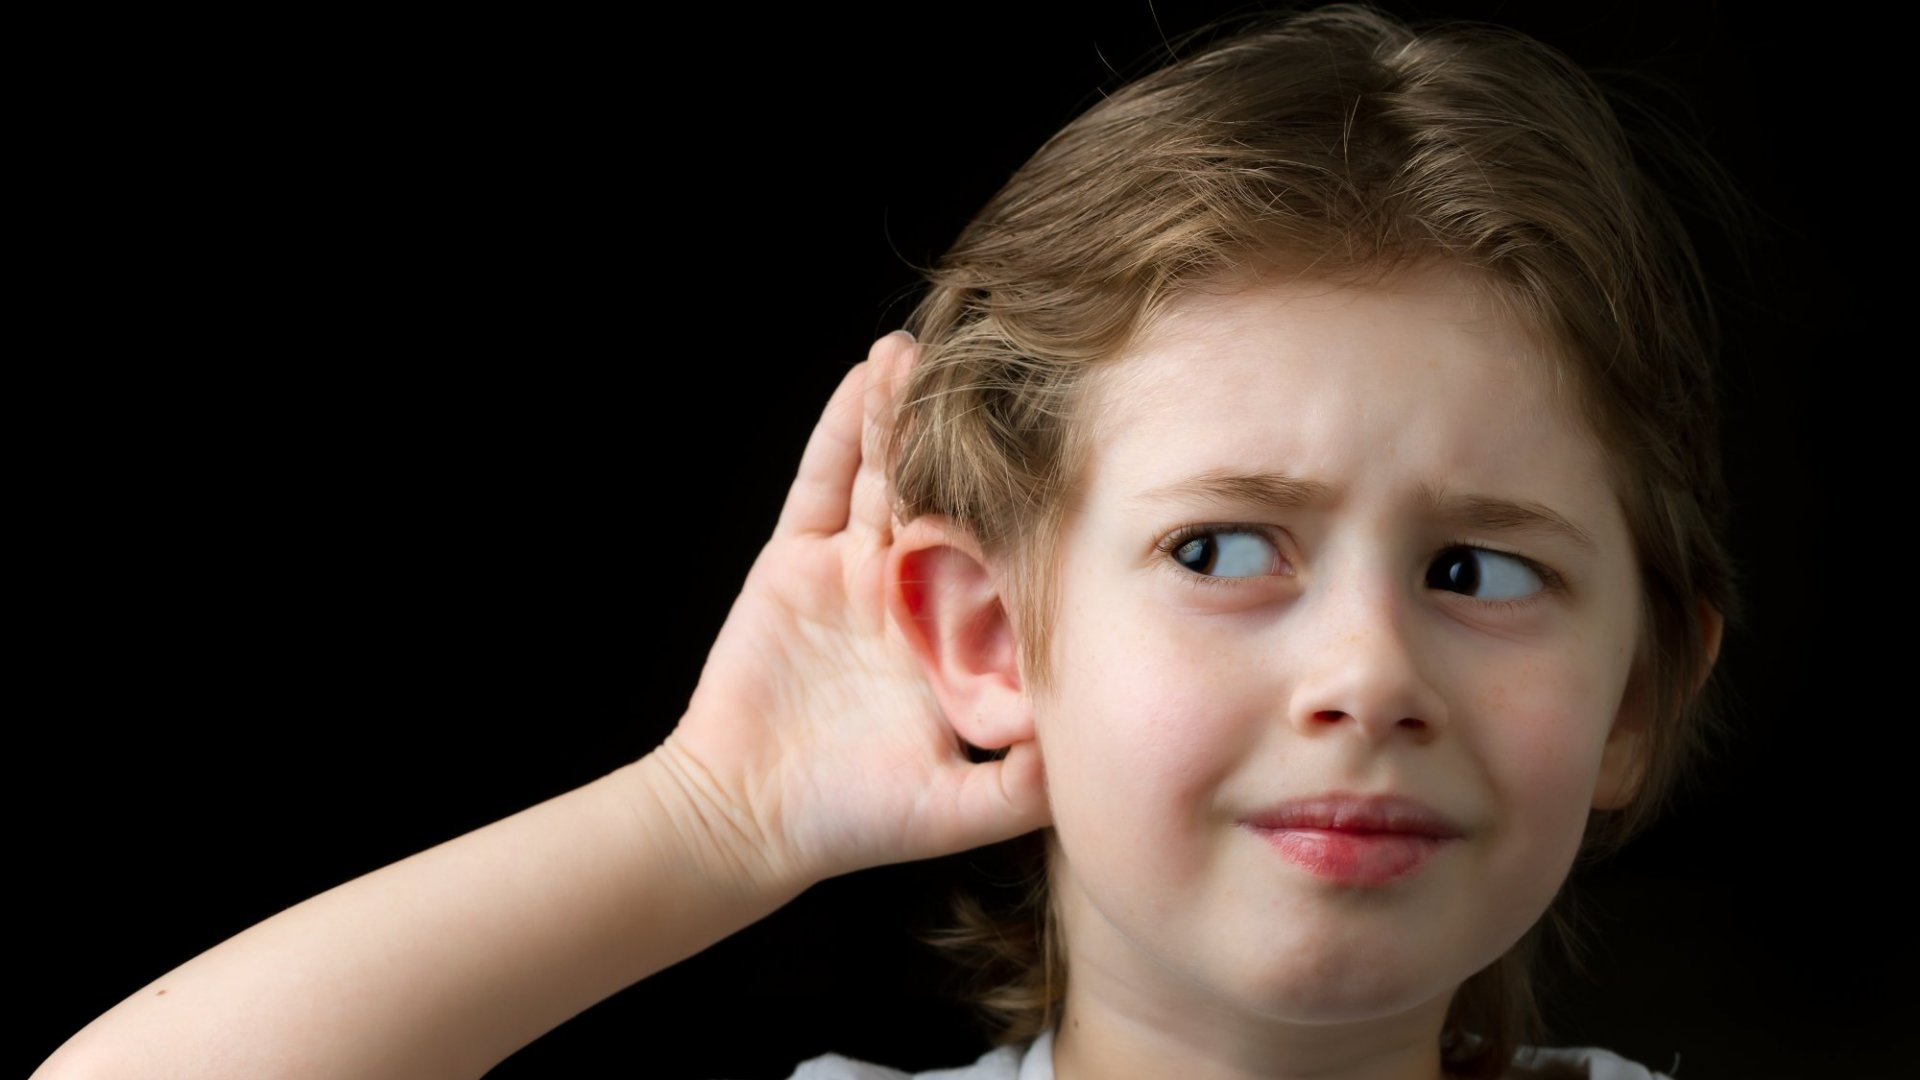 Want To Be a Better Listener? Avoid Doing These 3 Embarrassing Things